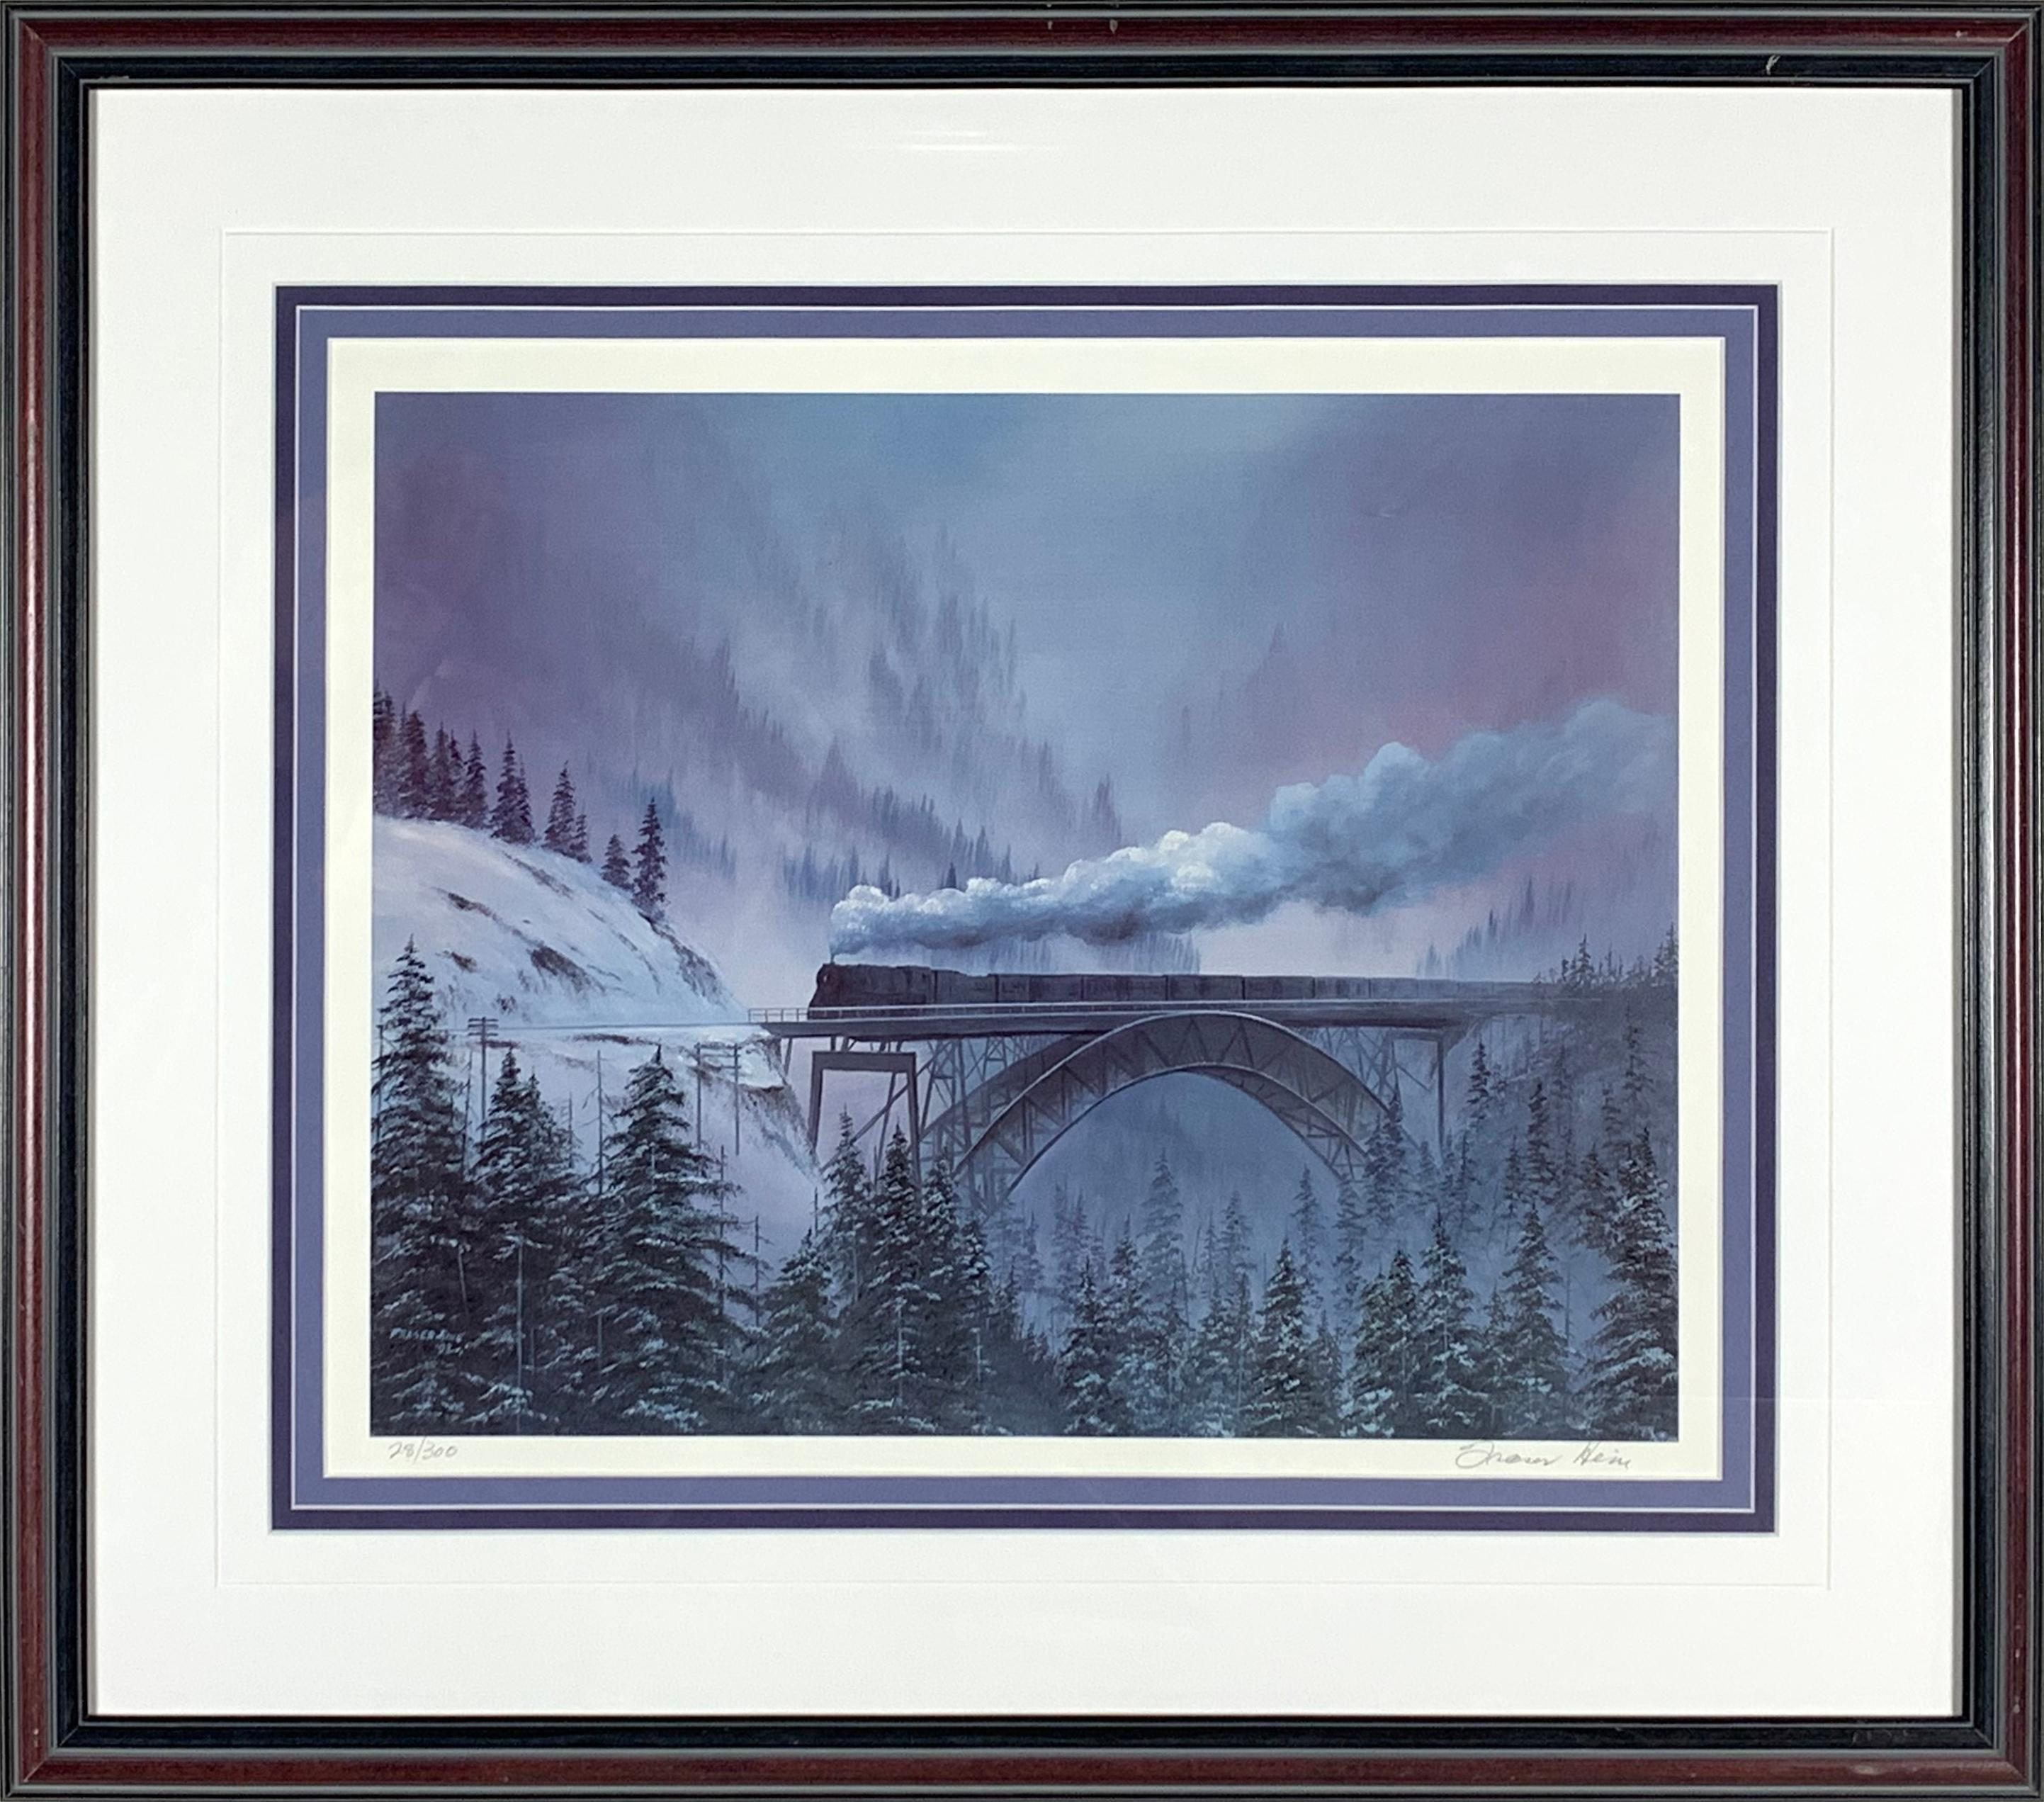 """Fraser Hine's """"Misty Morning Steam"""" Limited Edition Print"""